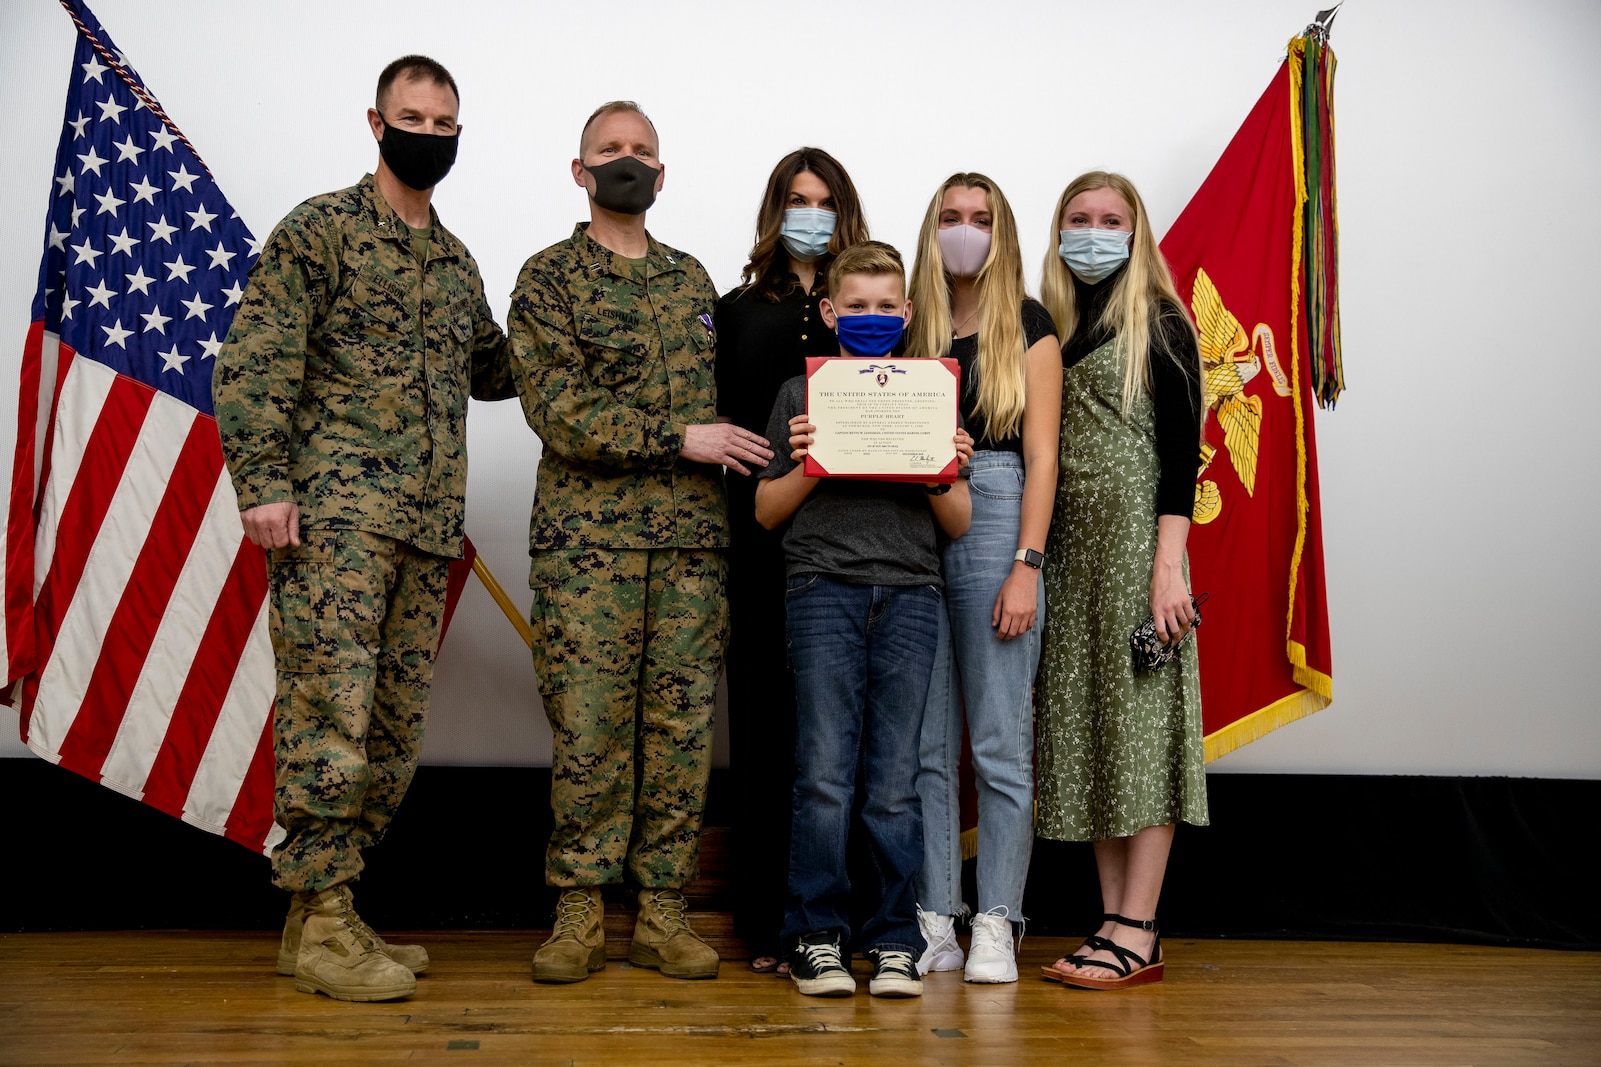 U.S. Marine Corps Brig. Gen. Kyle Ellison, Commanding General for 3rd Marine Expeditionary Brigade, poses for a photo with Capt. Kevin. W. Leishman, an Anti-Terrorism force protection officer, 3D MEB, and his family after a Purple Heart ceremony at the base theater, Camp Courtney, Okinawa, Japan, Feb. 24, 2021.